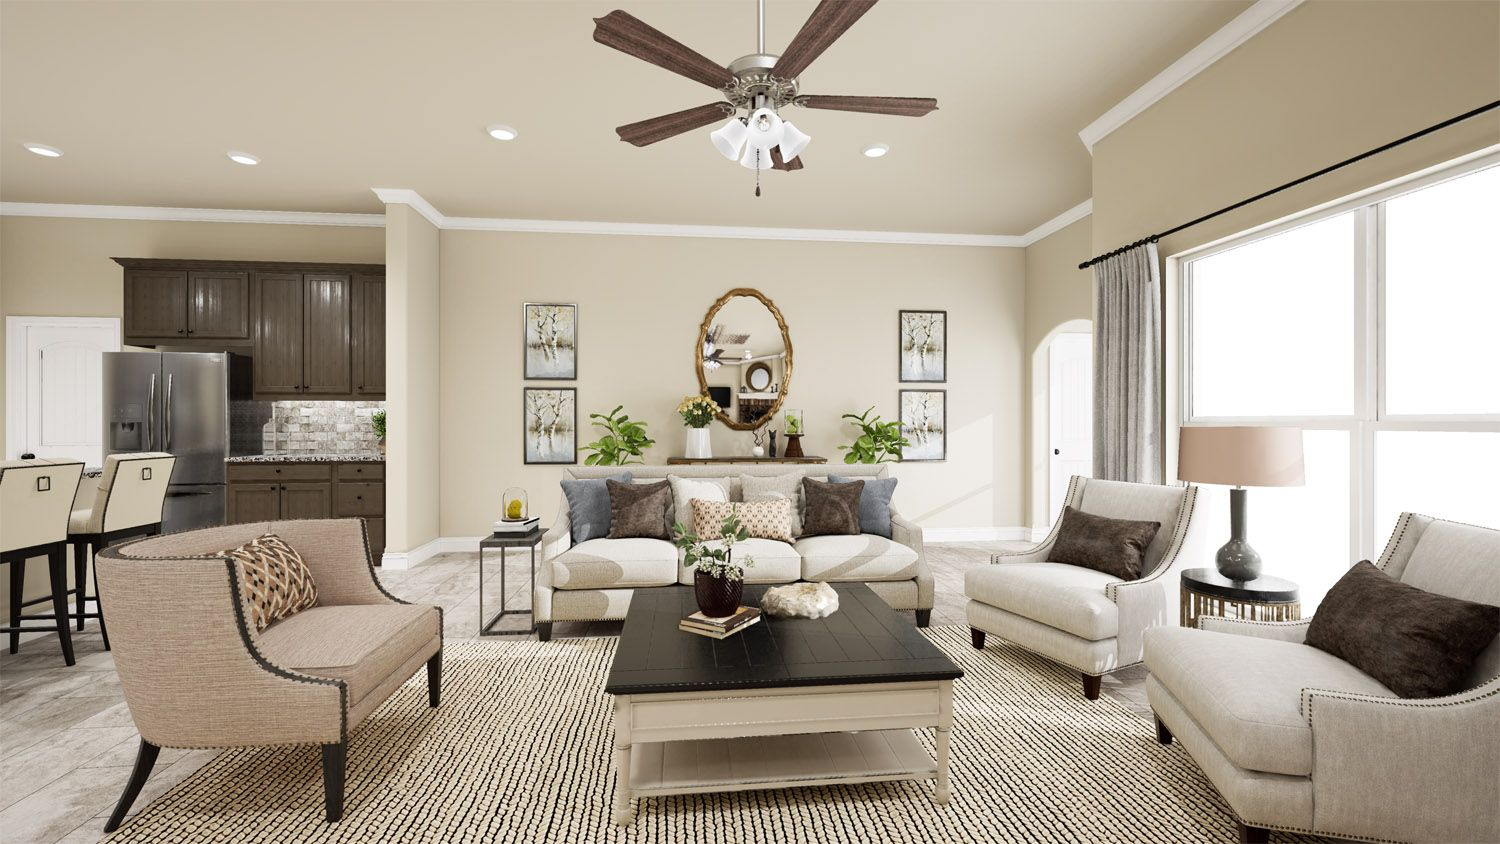 Living Area featured in the 2500 Series By Schuber Mitchell Homes in Fayetteville, AR